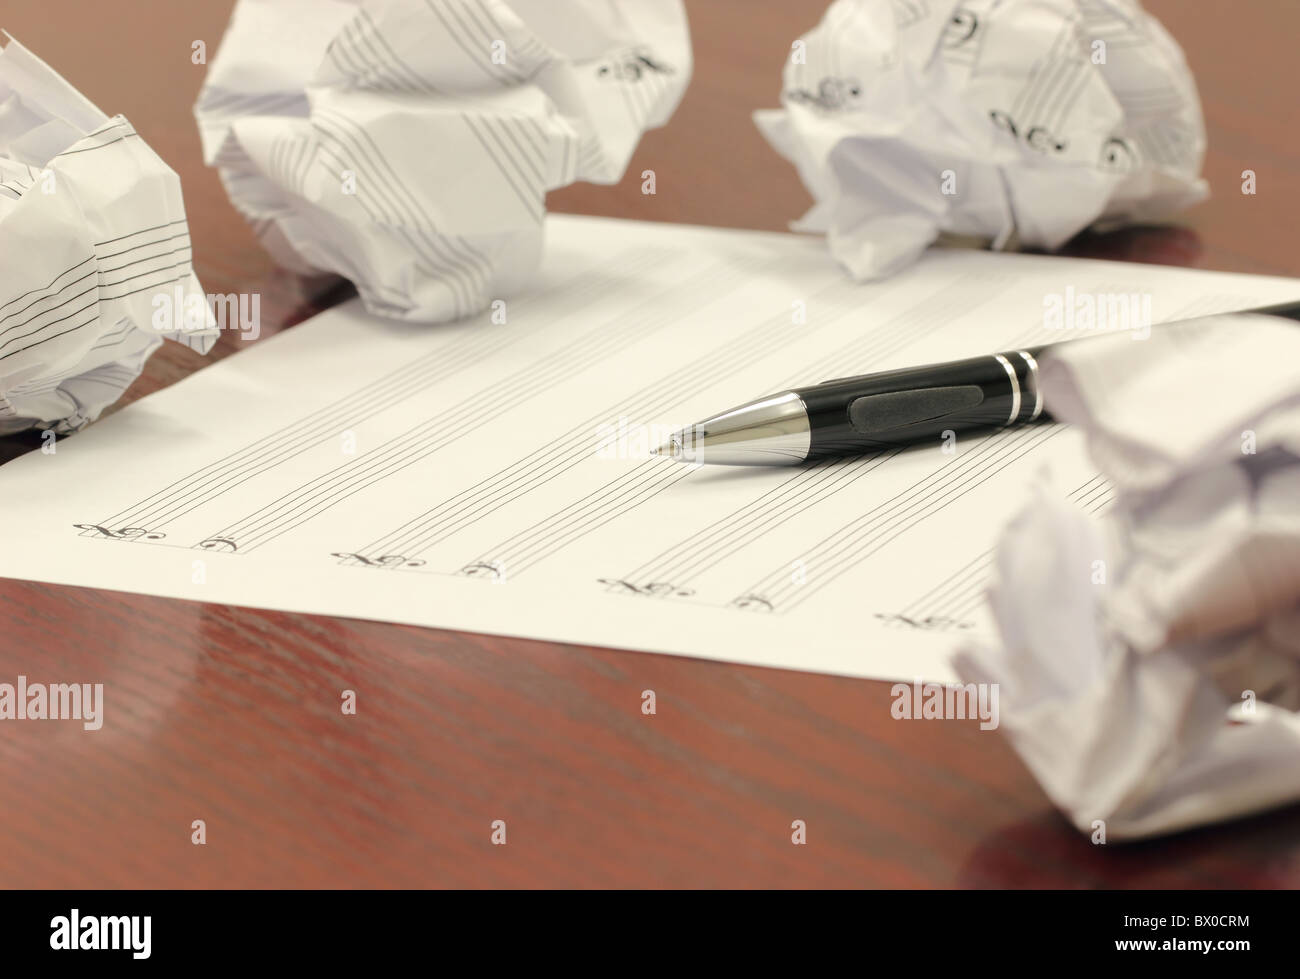 Writer's Block - Blank staff paper, mechanical pencil, and crumbled balls of paper scattered on a wooden desk. - Stock Image